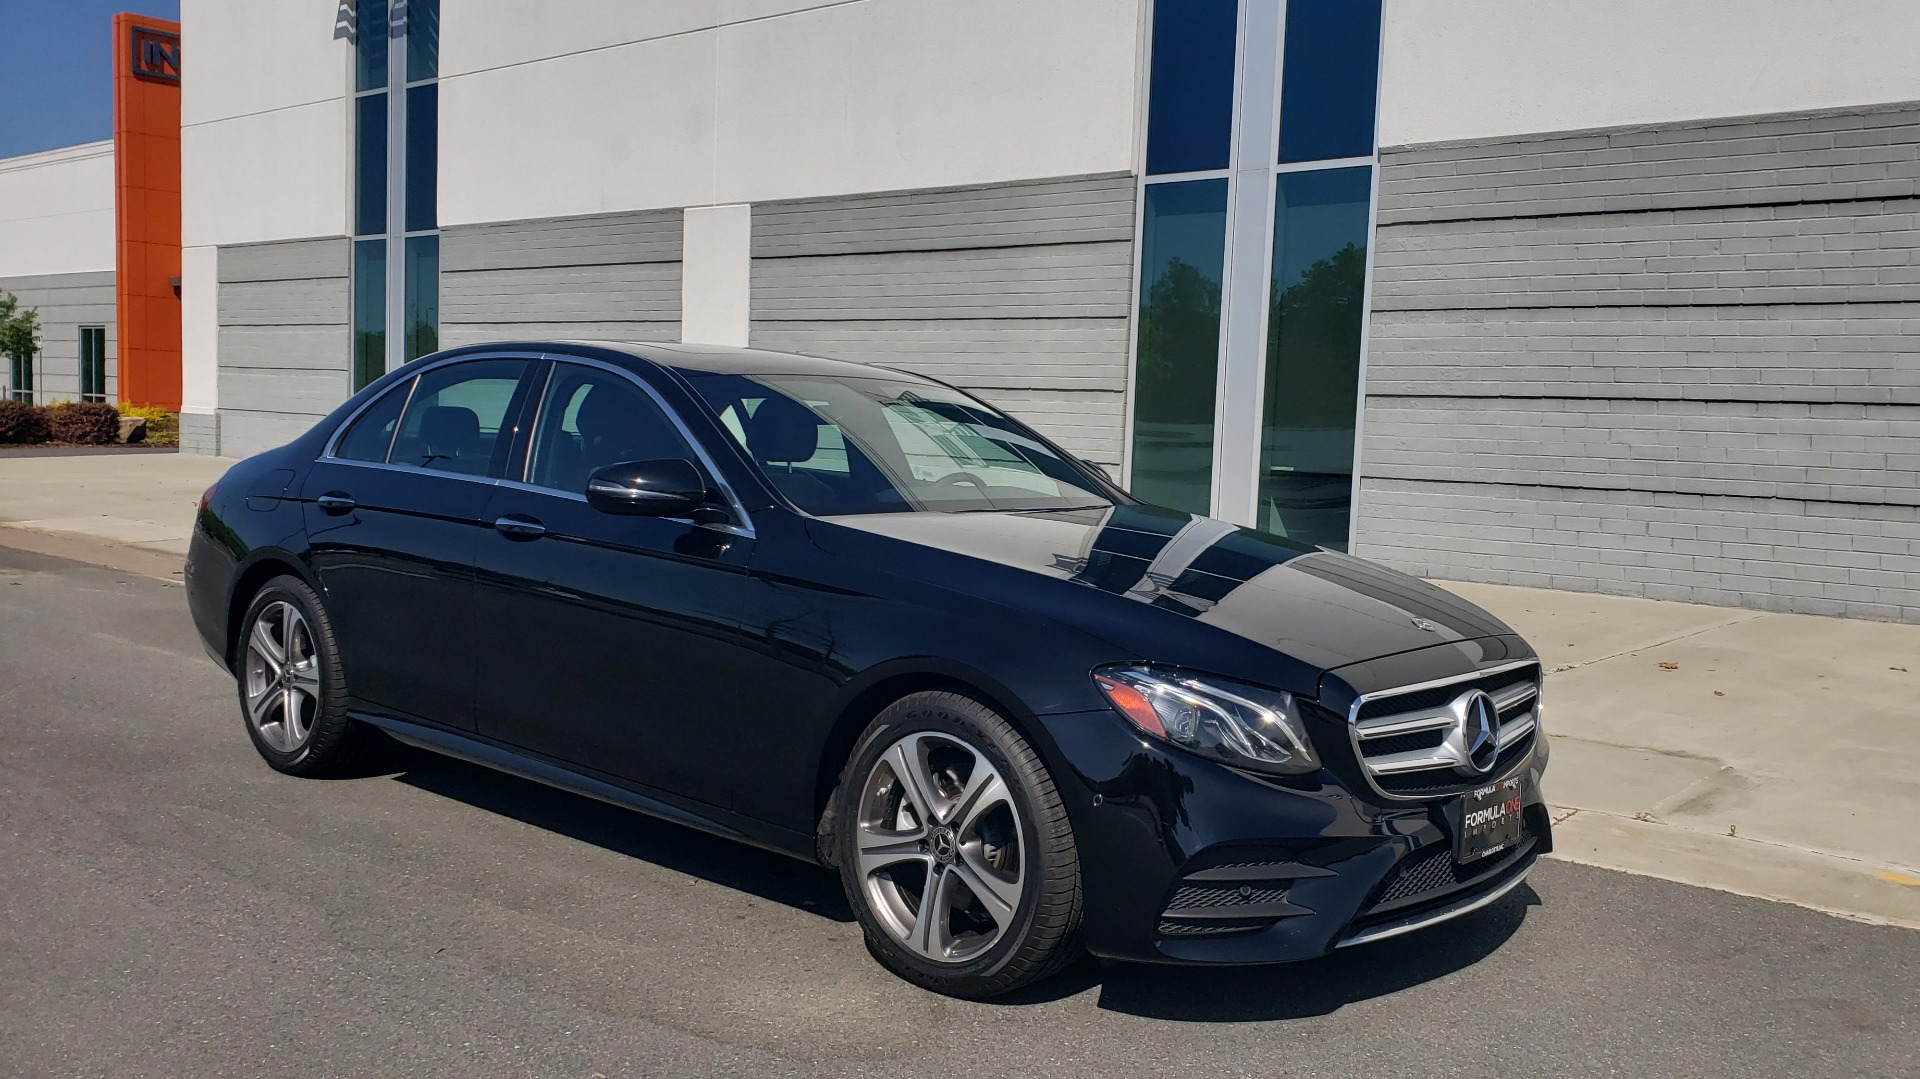 Used 2018 Mercedes-Benz E-CLASS E 300 4MATIC PREMIUM / NAV / BURMESTER SND / BSM / REARVIEW for sale $33,995 at Formula Imports in Charlotte NC 28227 7